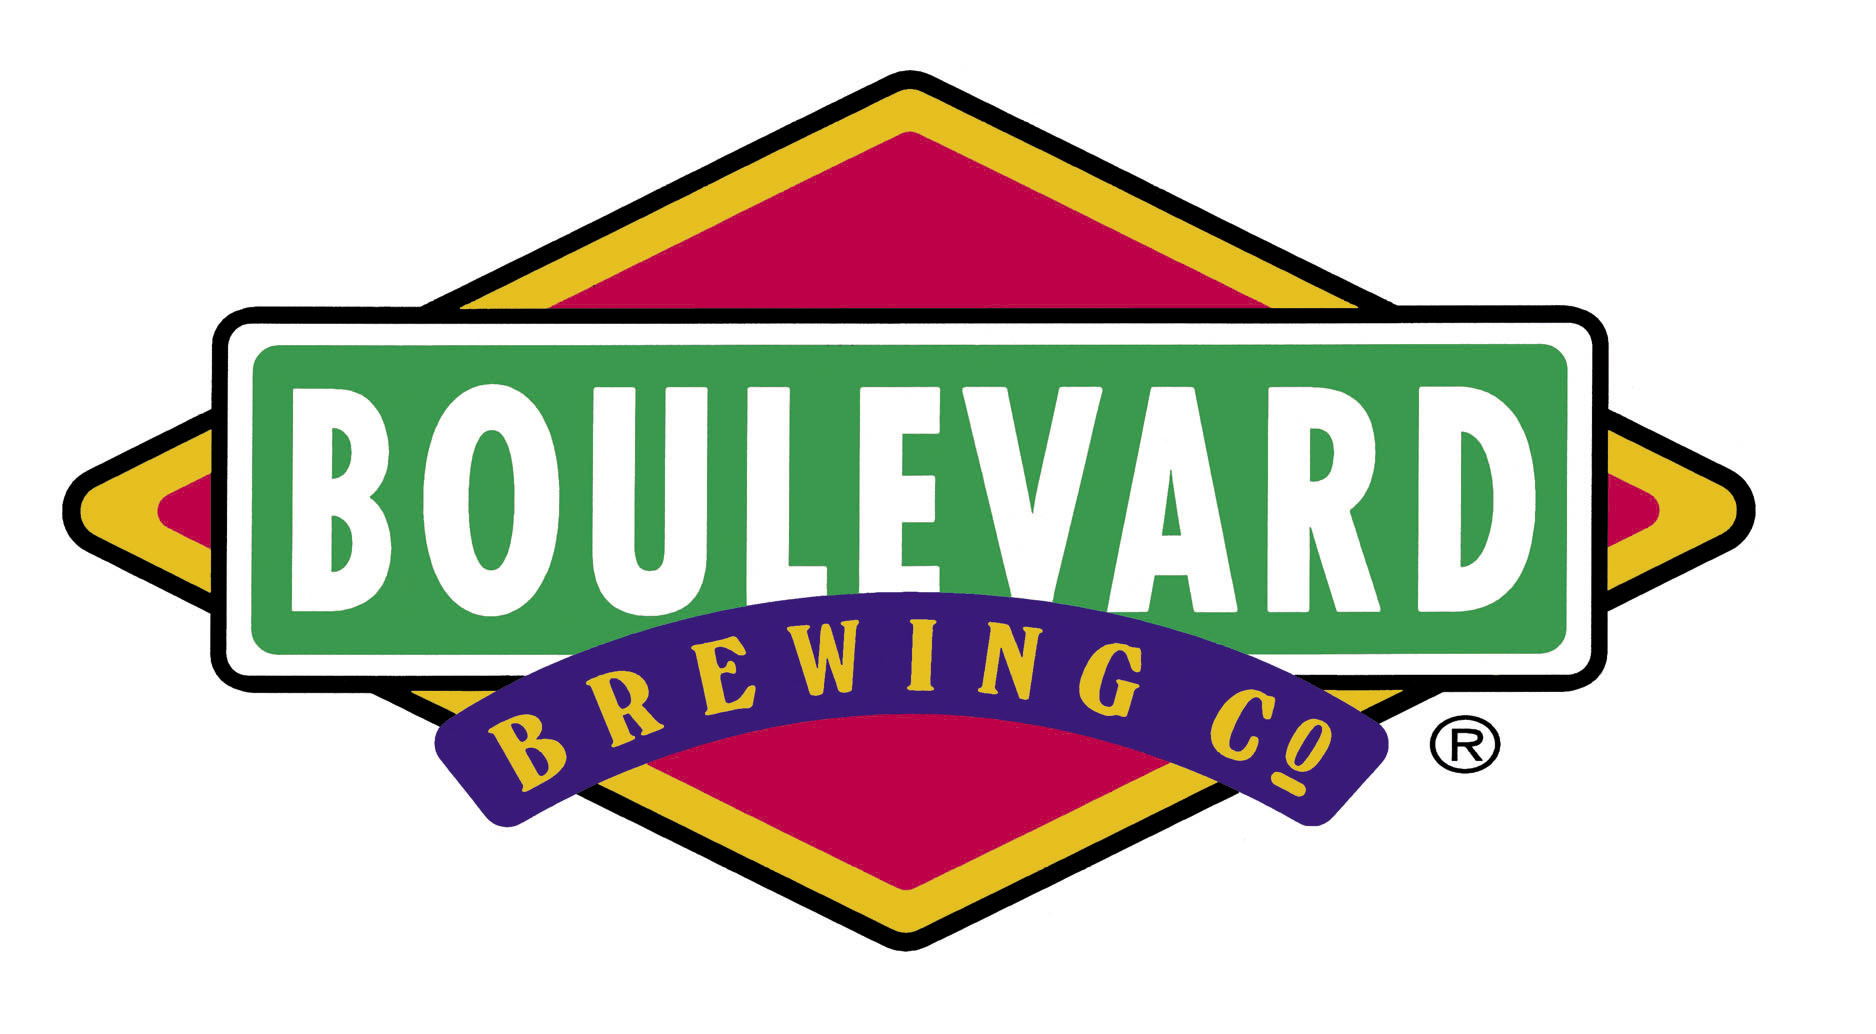 Boulevard brewing to open plaza dry goods store in kansas for Craft stores in kansas city